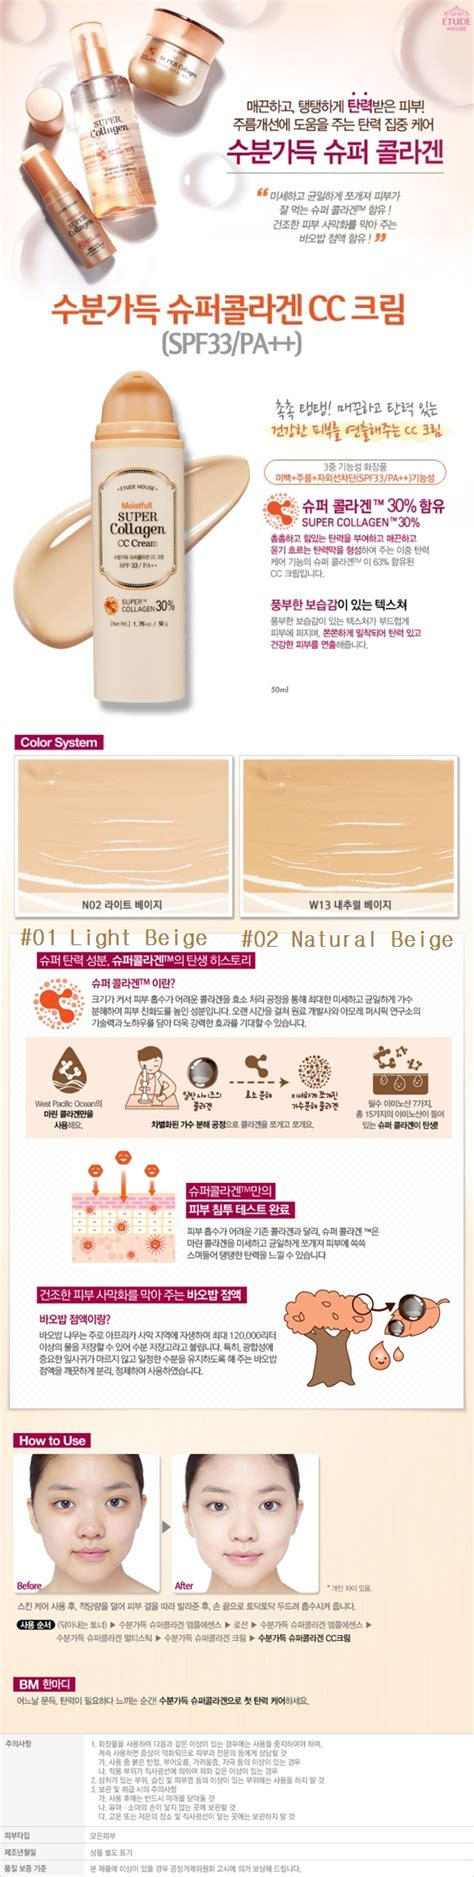 Etude Cc cc moistfull collagen etude house le dung shop